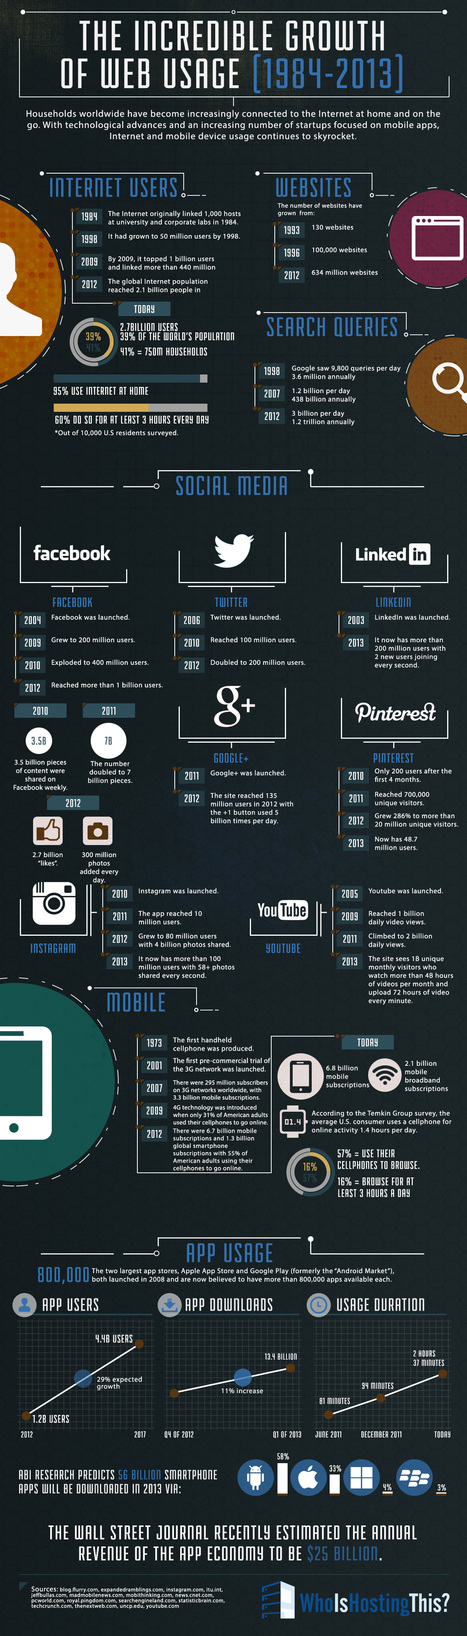 Infographic: The Incredible Growth of Web Usage [1984-2013] | Social Media Advocacy | Scoop.it